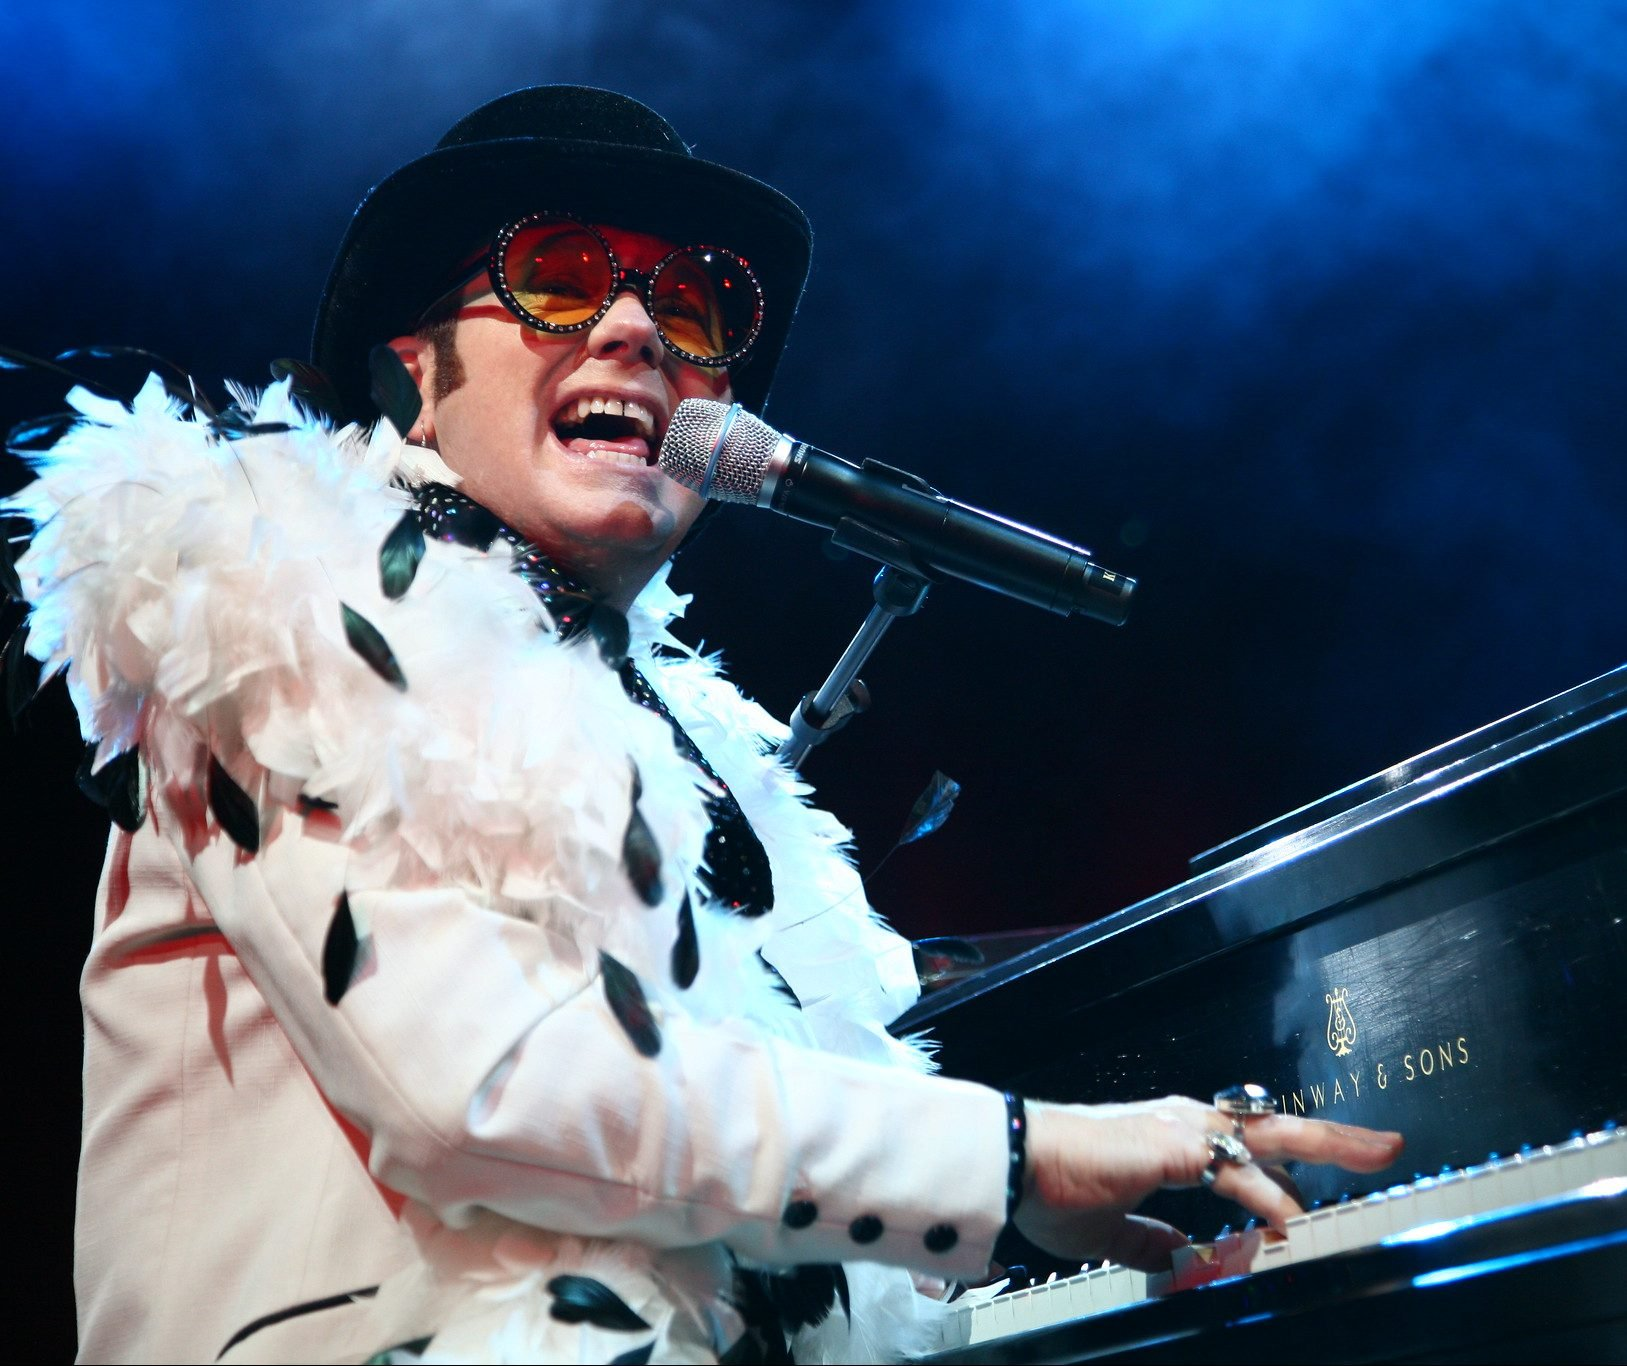 11998550664 20e6ad4aa8 k e1616670763739 23 Things You Didn't Know About Elton John